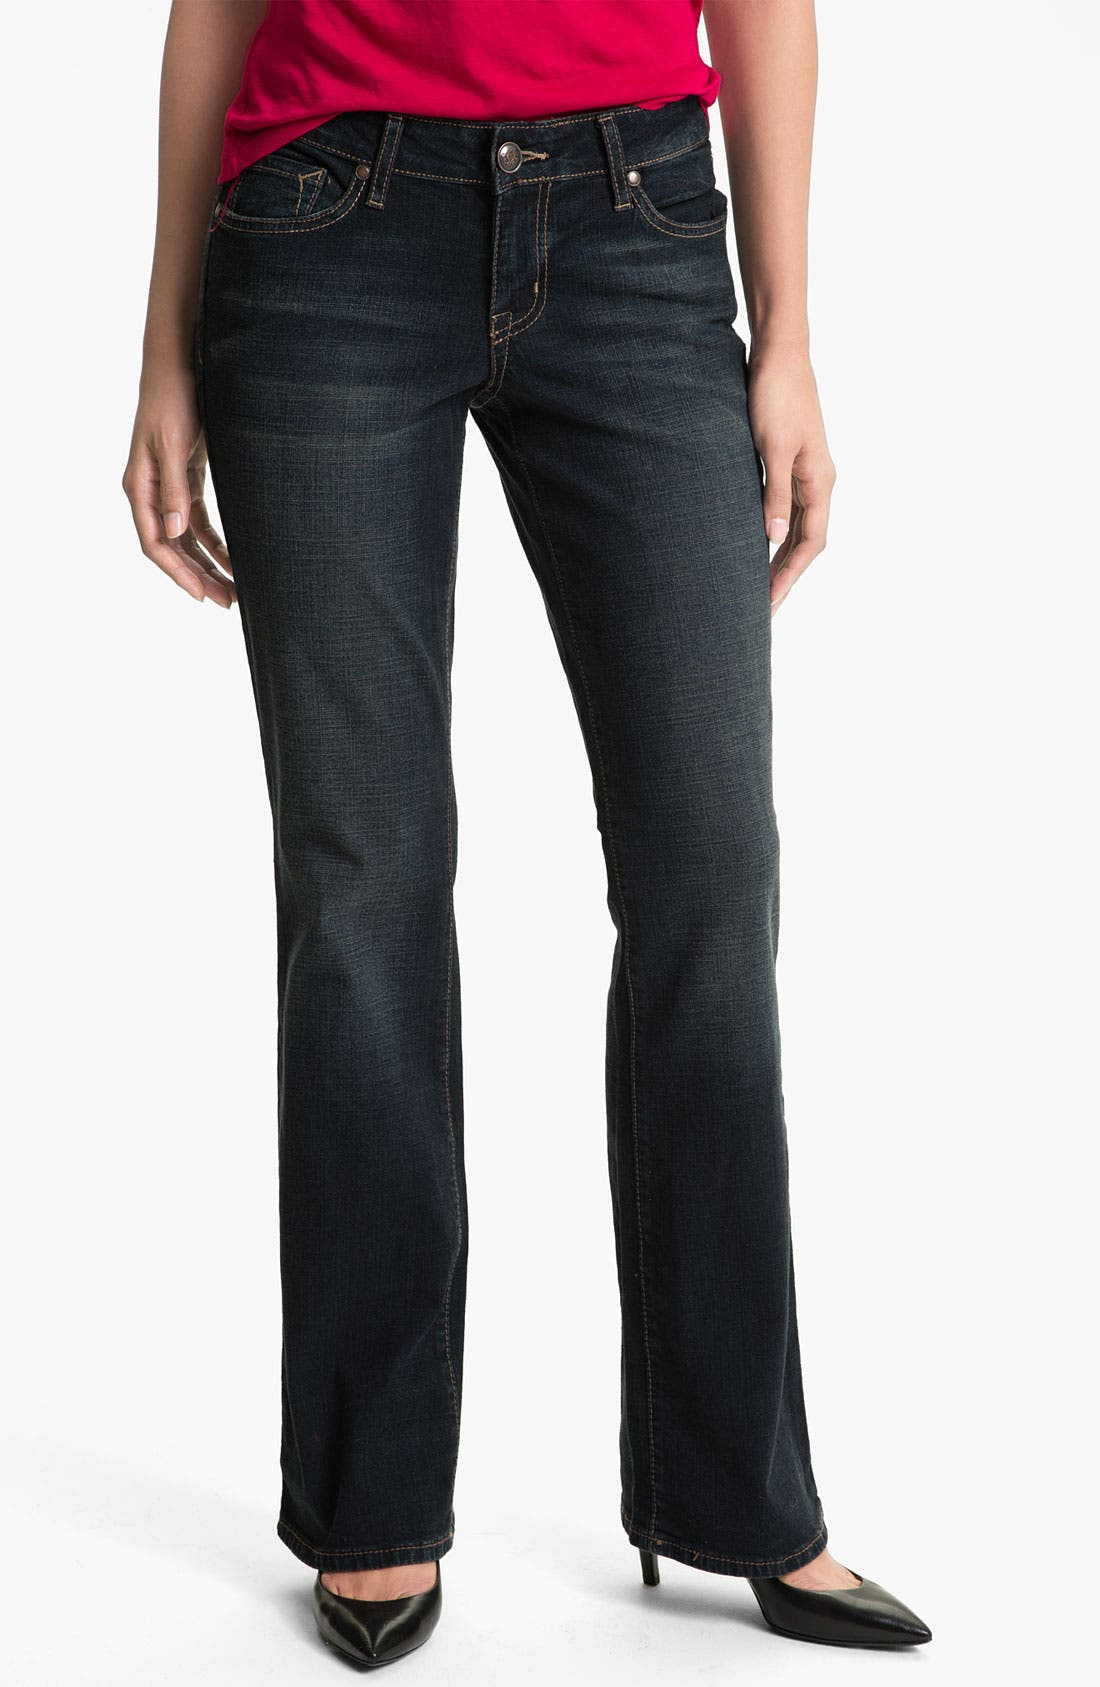 Alternate Image 1 Selected - Jessica Simpson 'Rockin' Curvy Bootcut Jeans (Mariana Stanton)